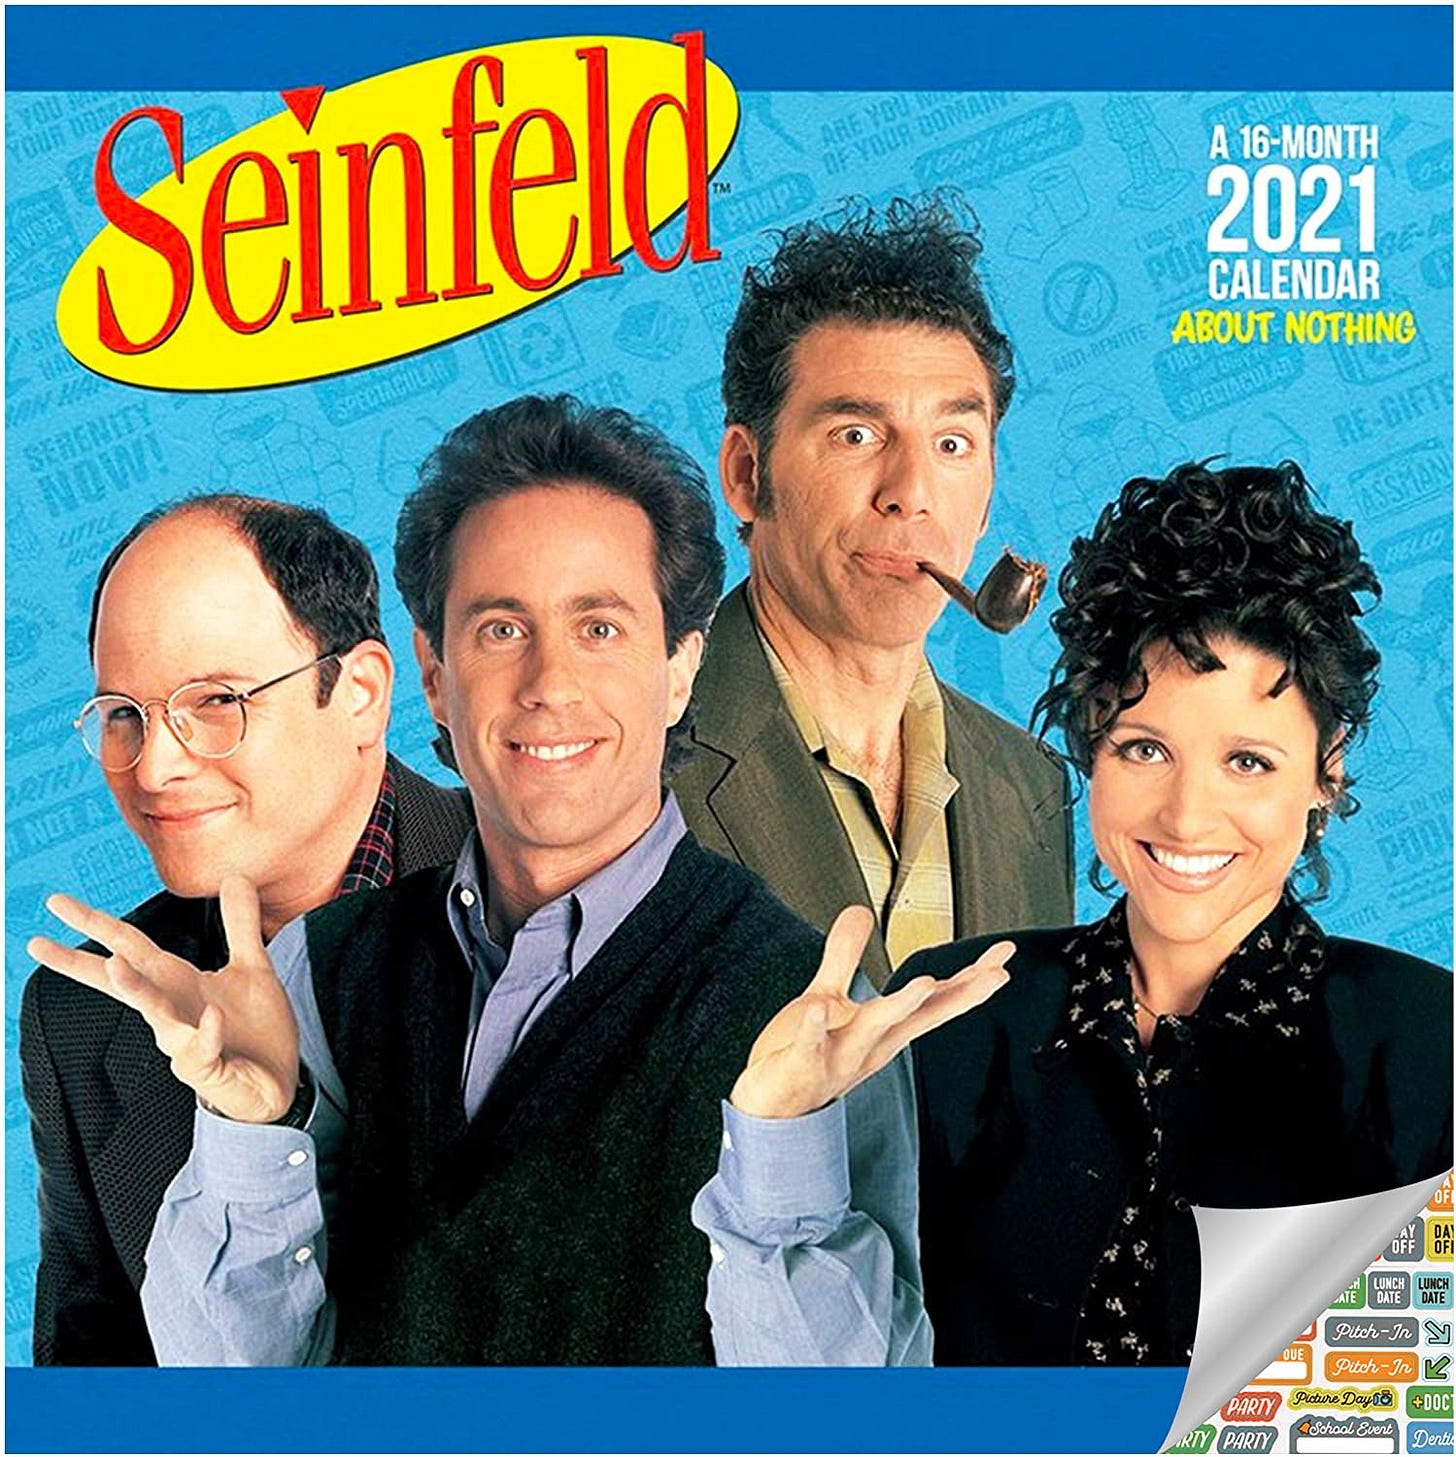 Those dicks from Seinfeld looking like a bunch of dicks.